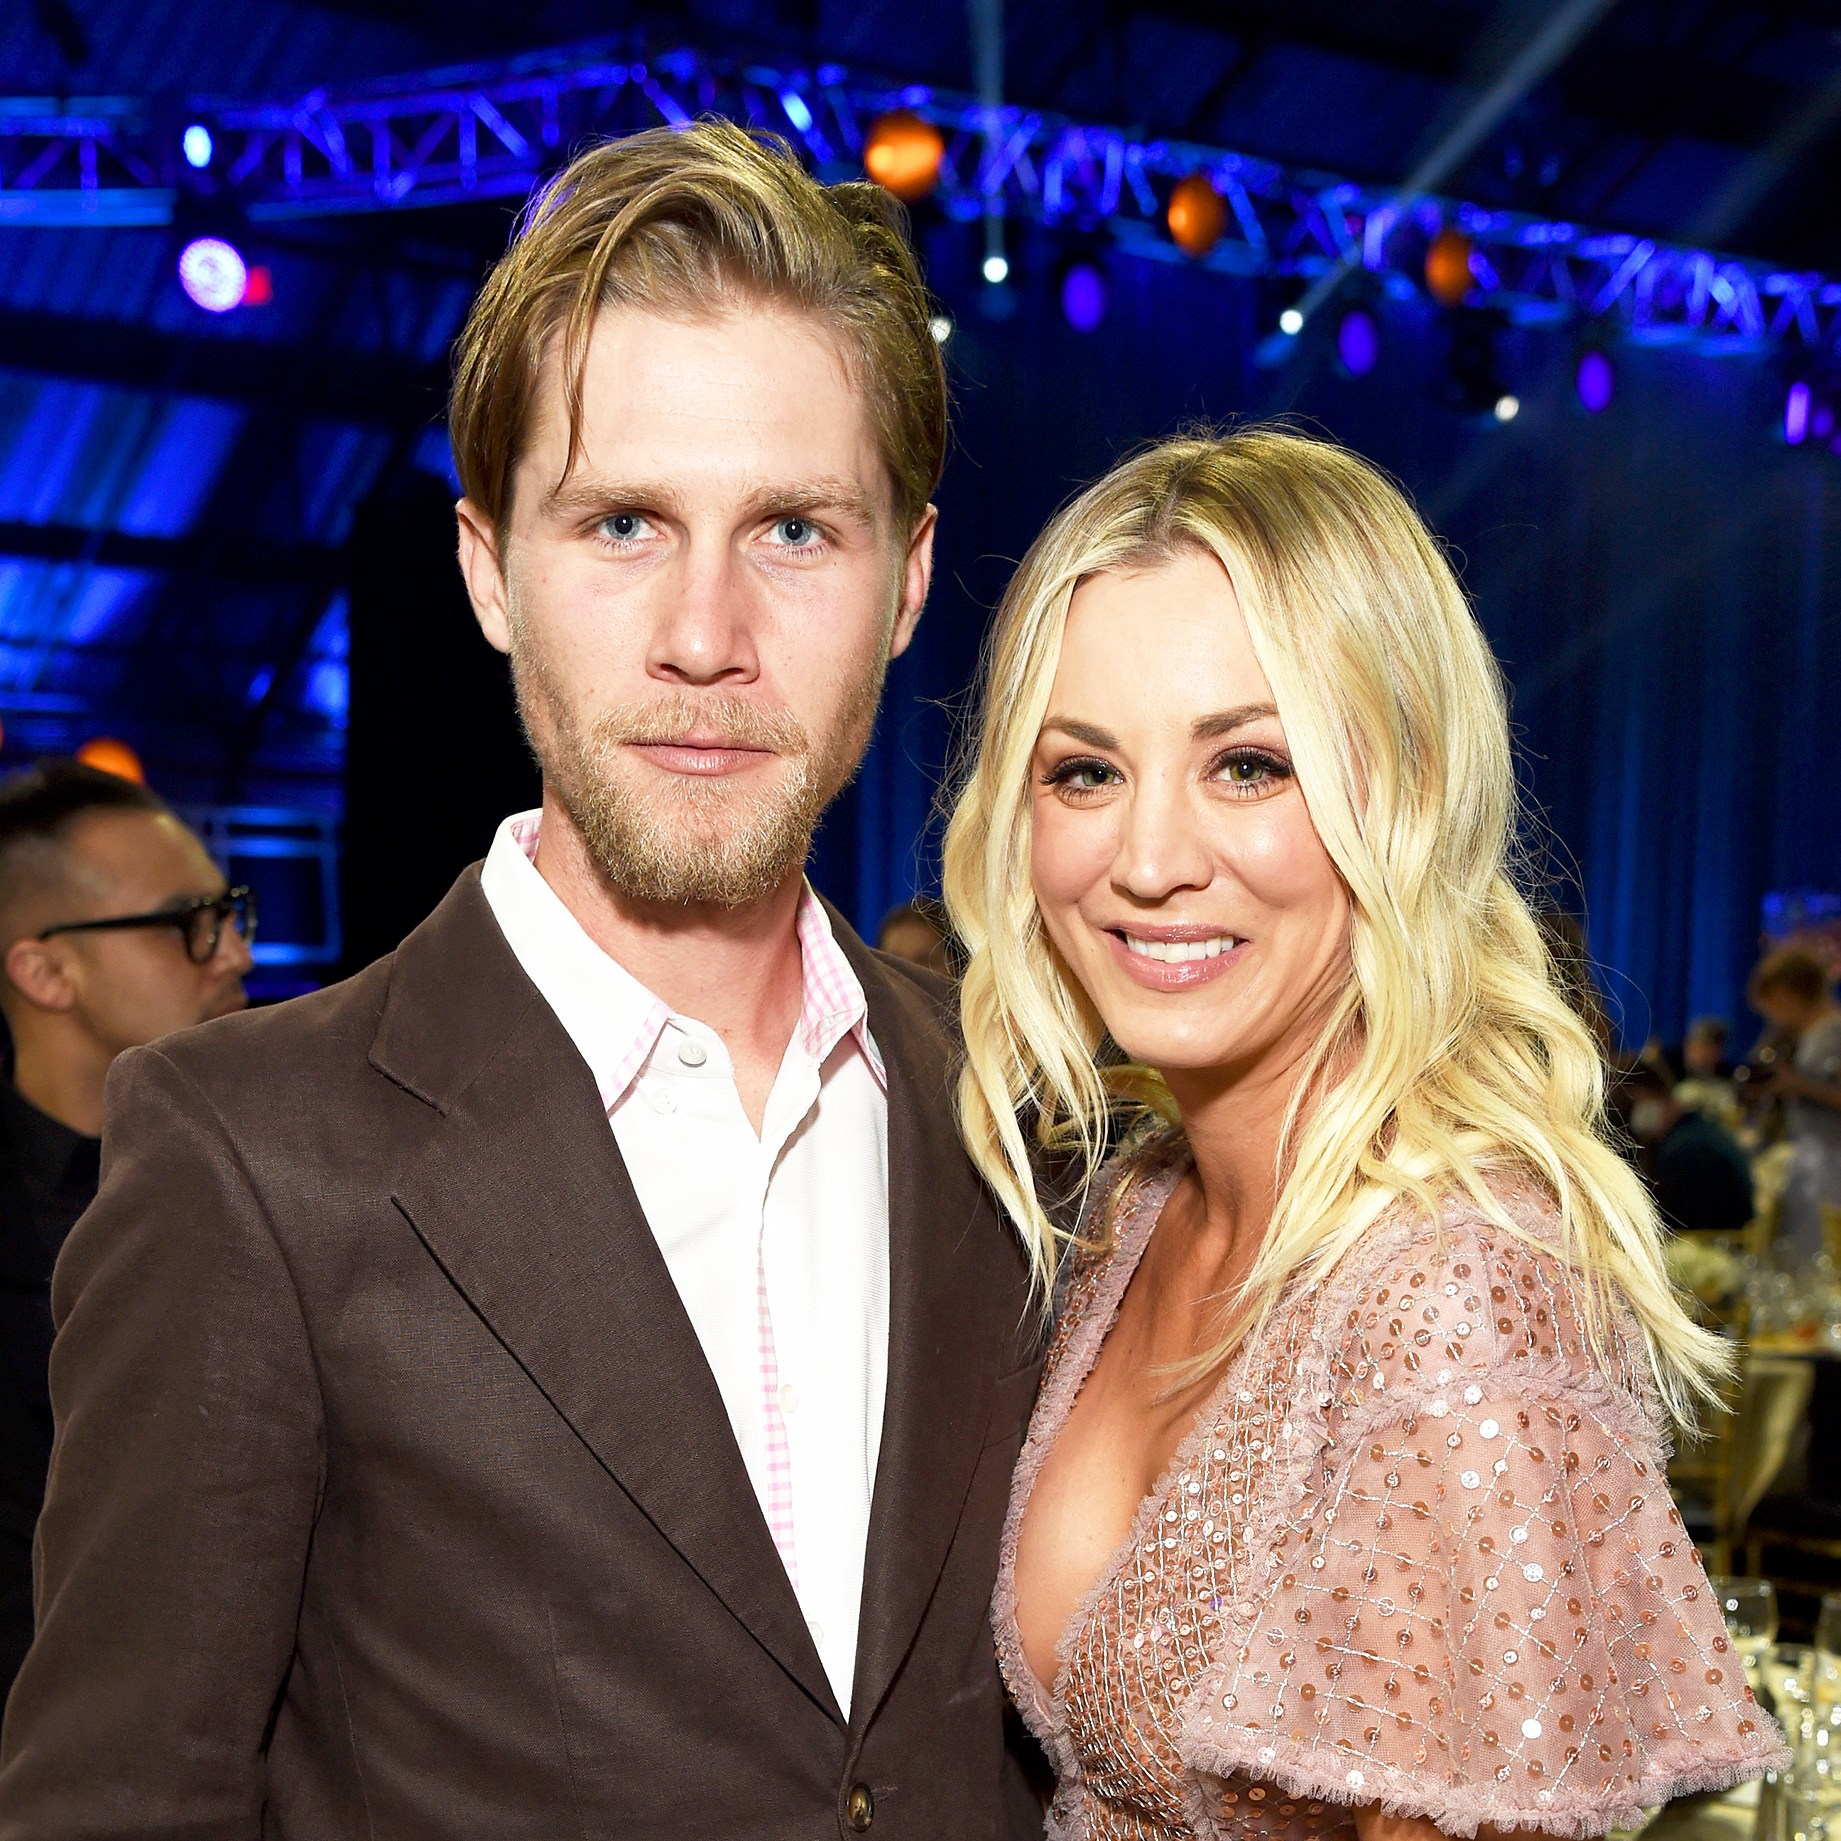 Kaley Cuoco and Karl Cook attend Moet & Chandon celebrate The 23rd Annual Critics' Choice Awards at Barker Hangar on January 11, 2018 in Santa Monica, California.